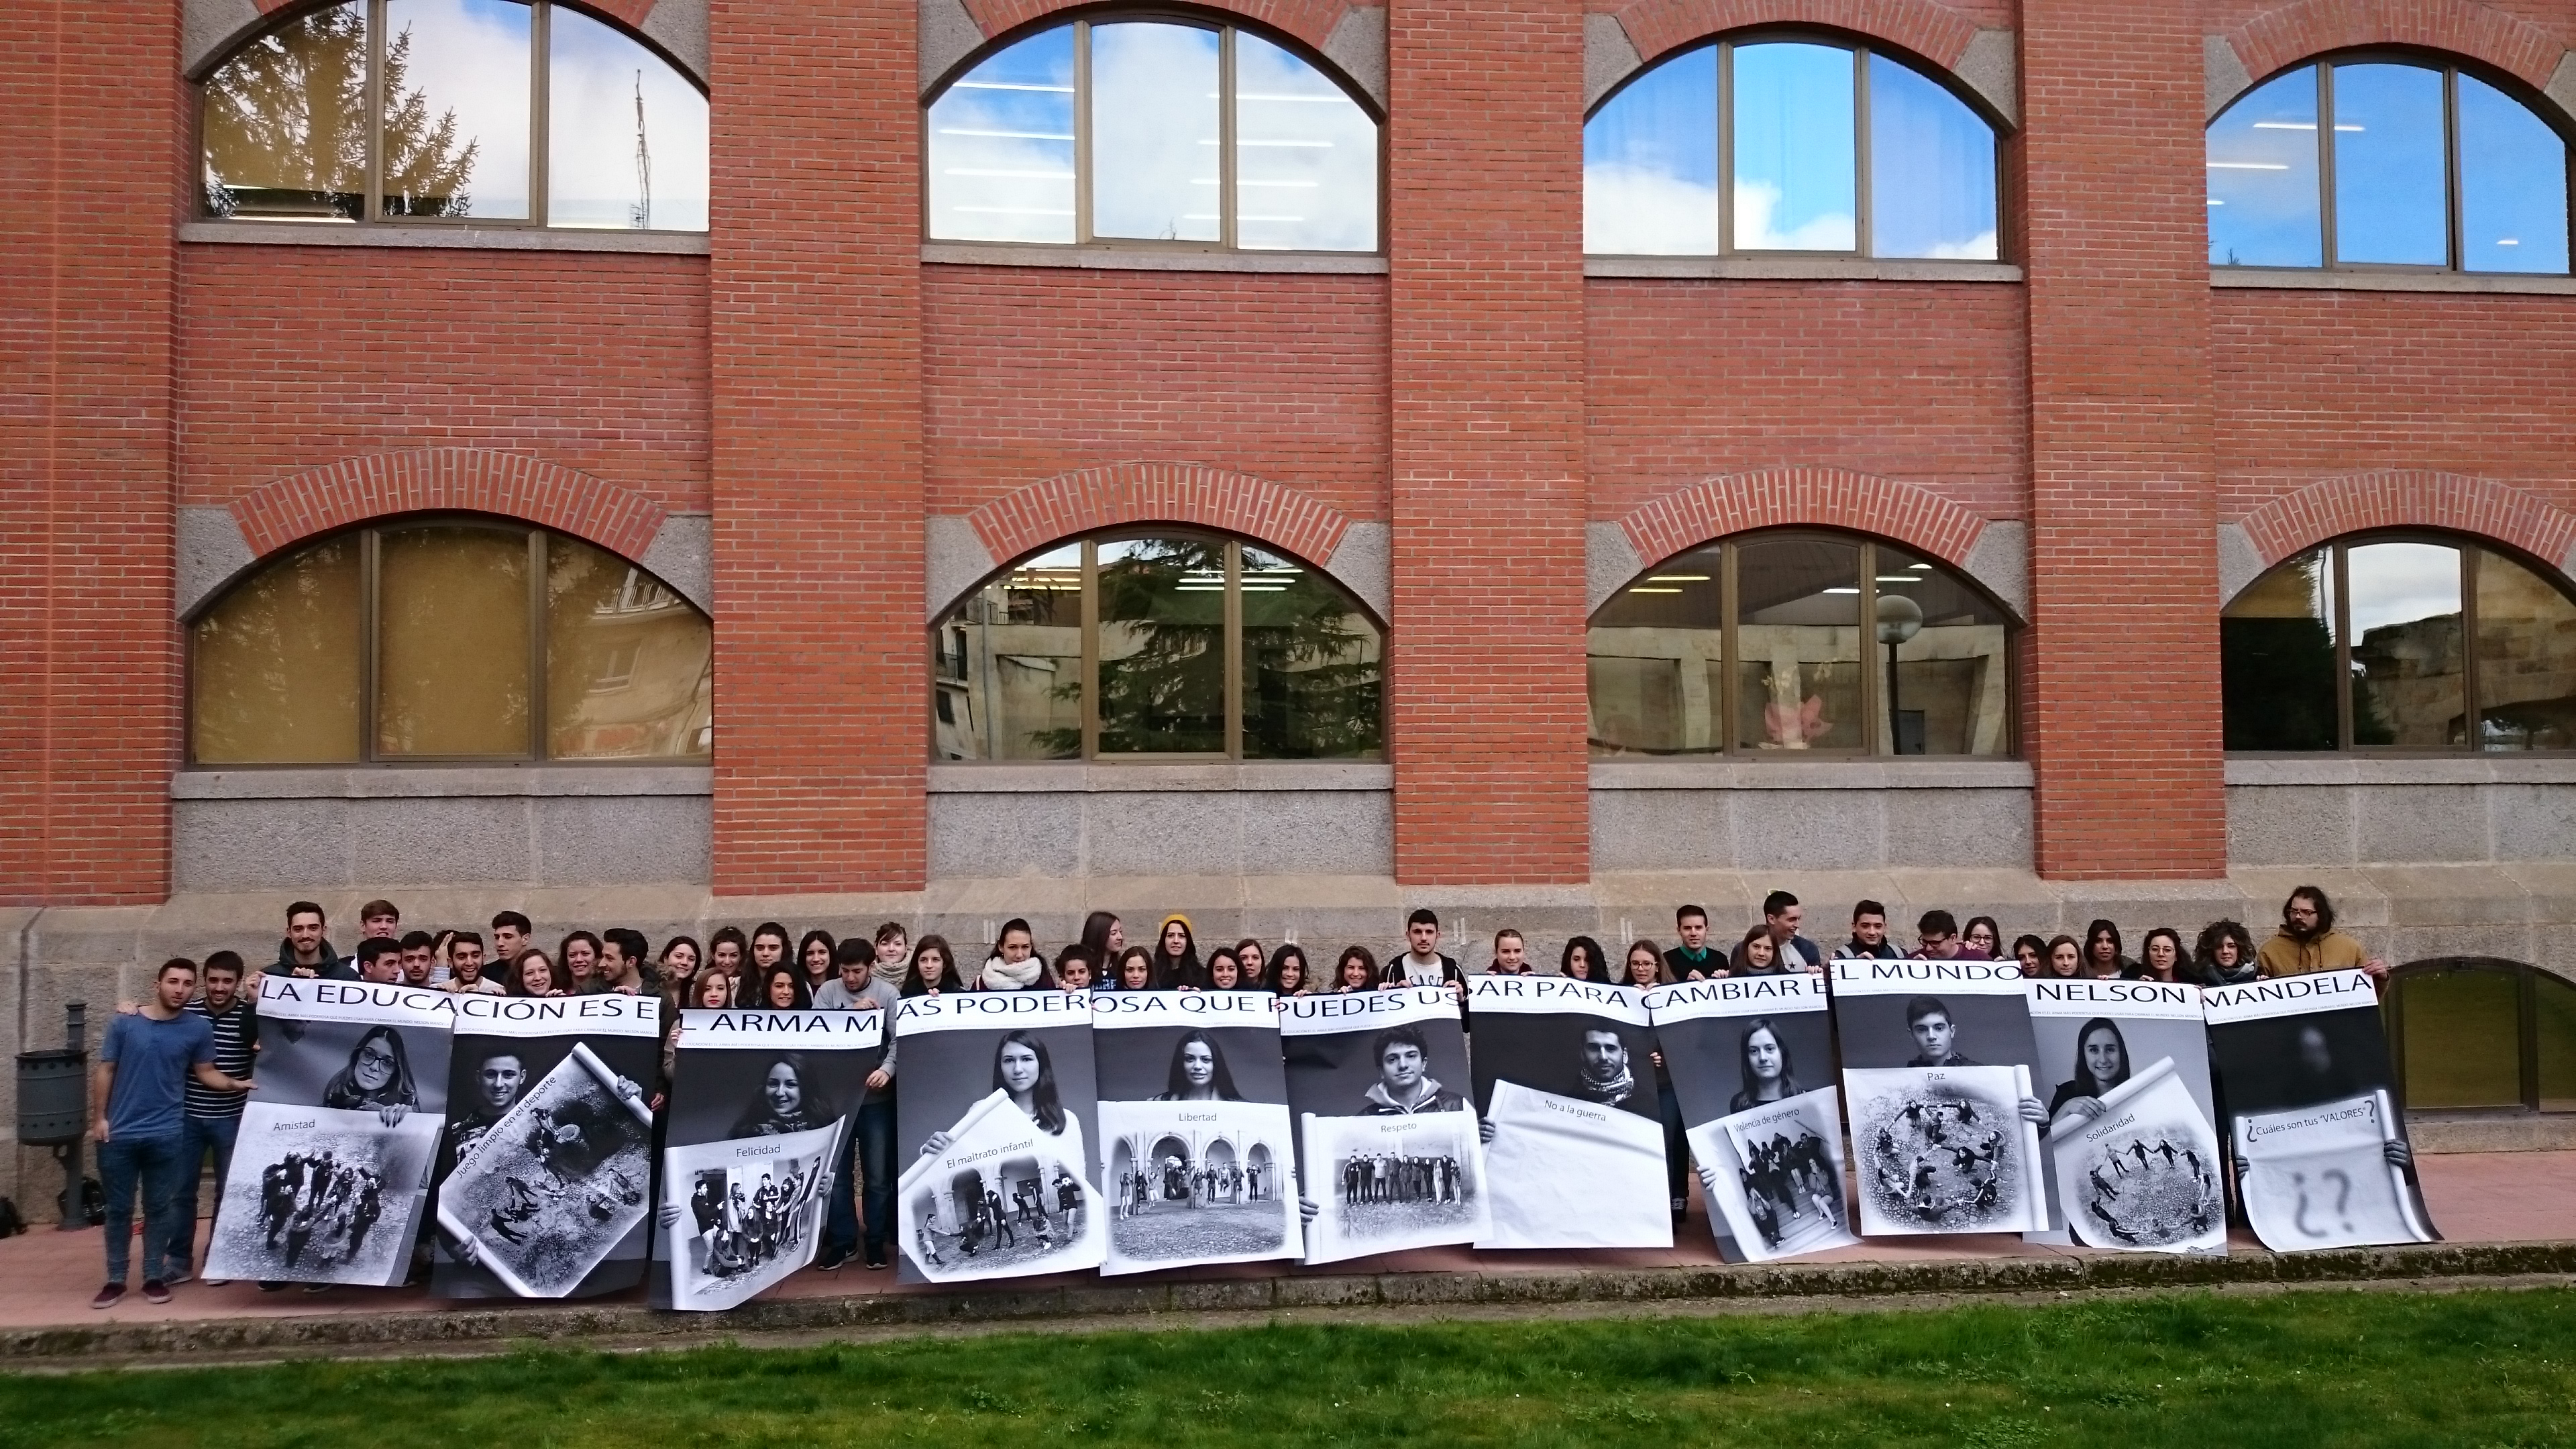 La Universidad de Salamanca participa en el proyecto cultural internacional 'Inside Out. The people's art project'